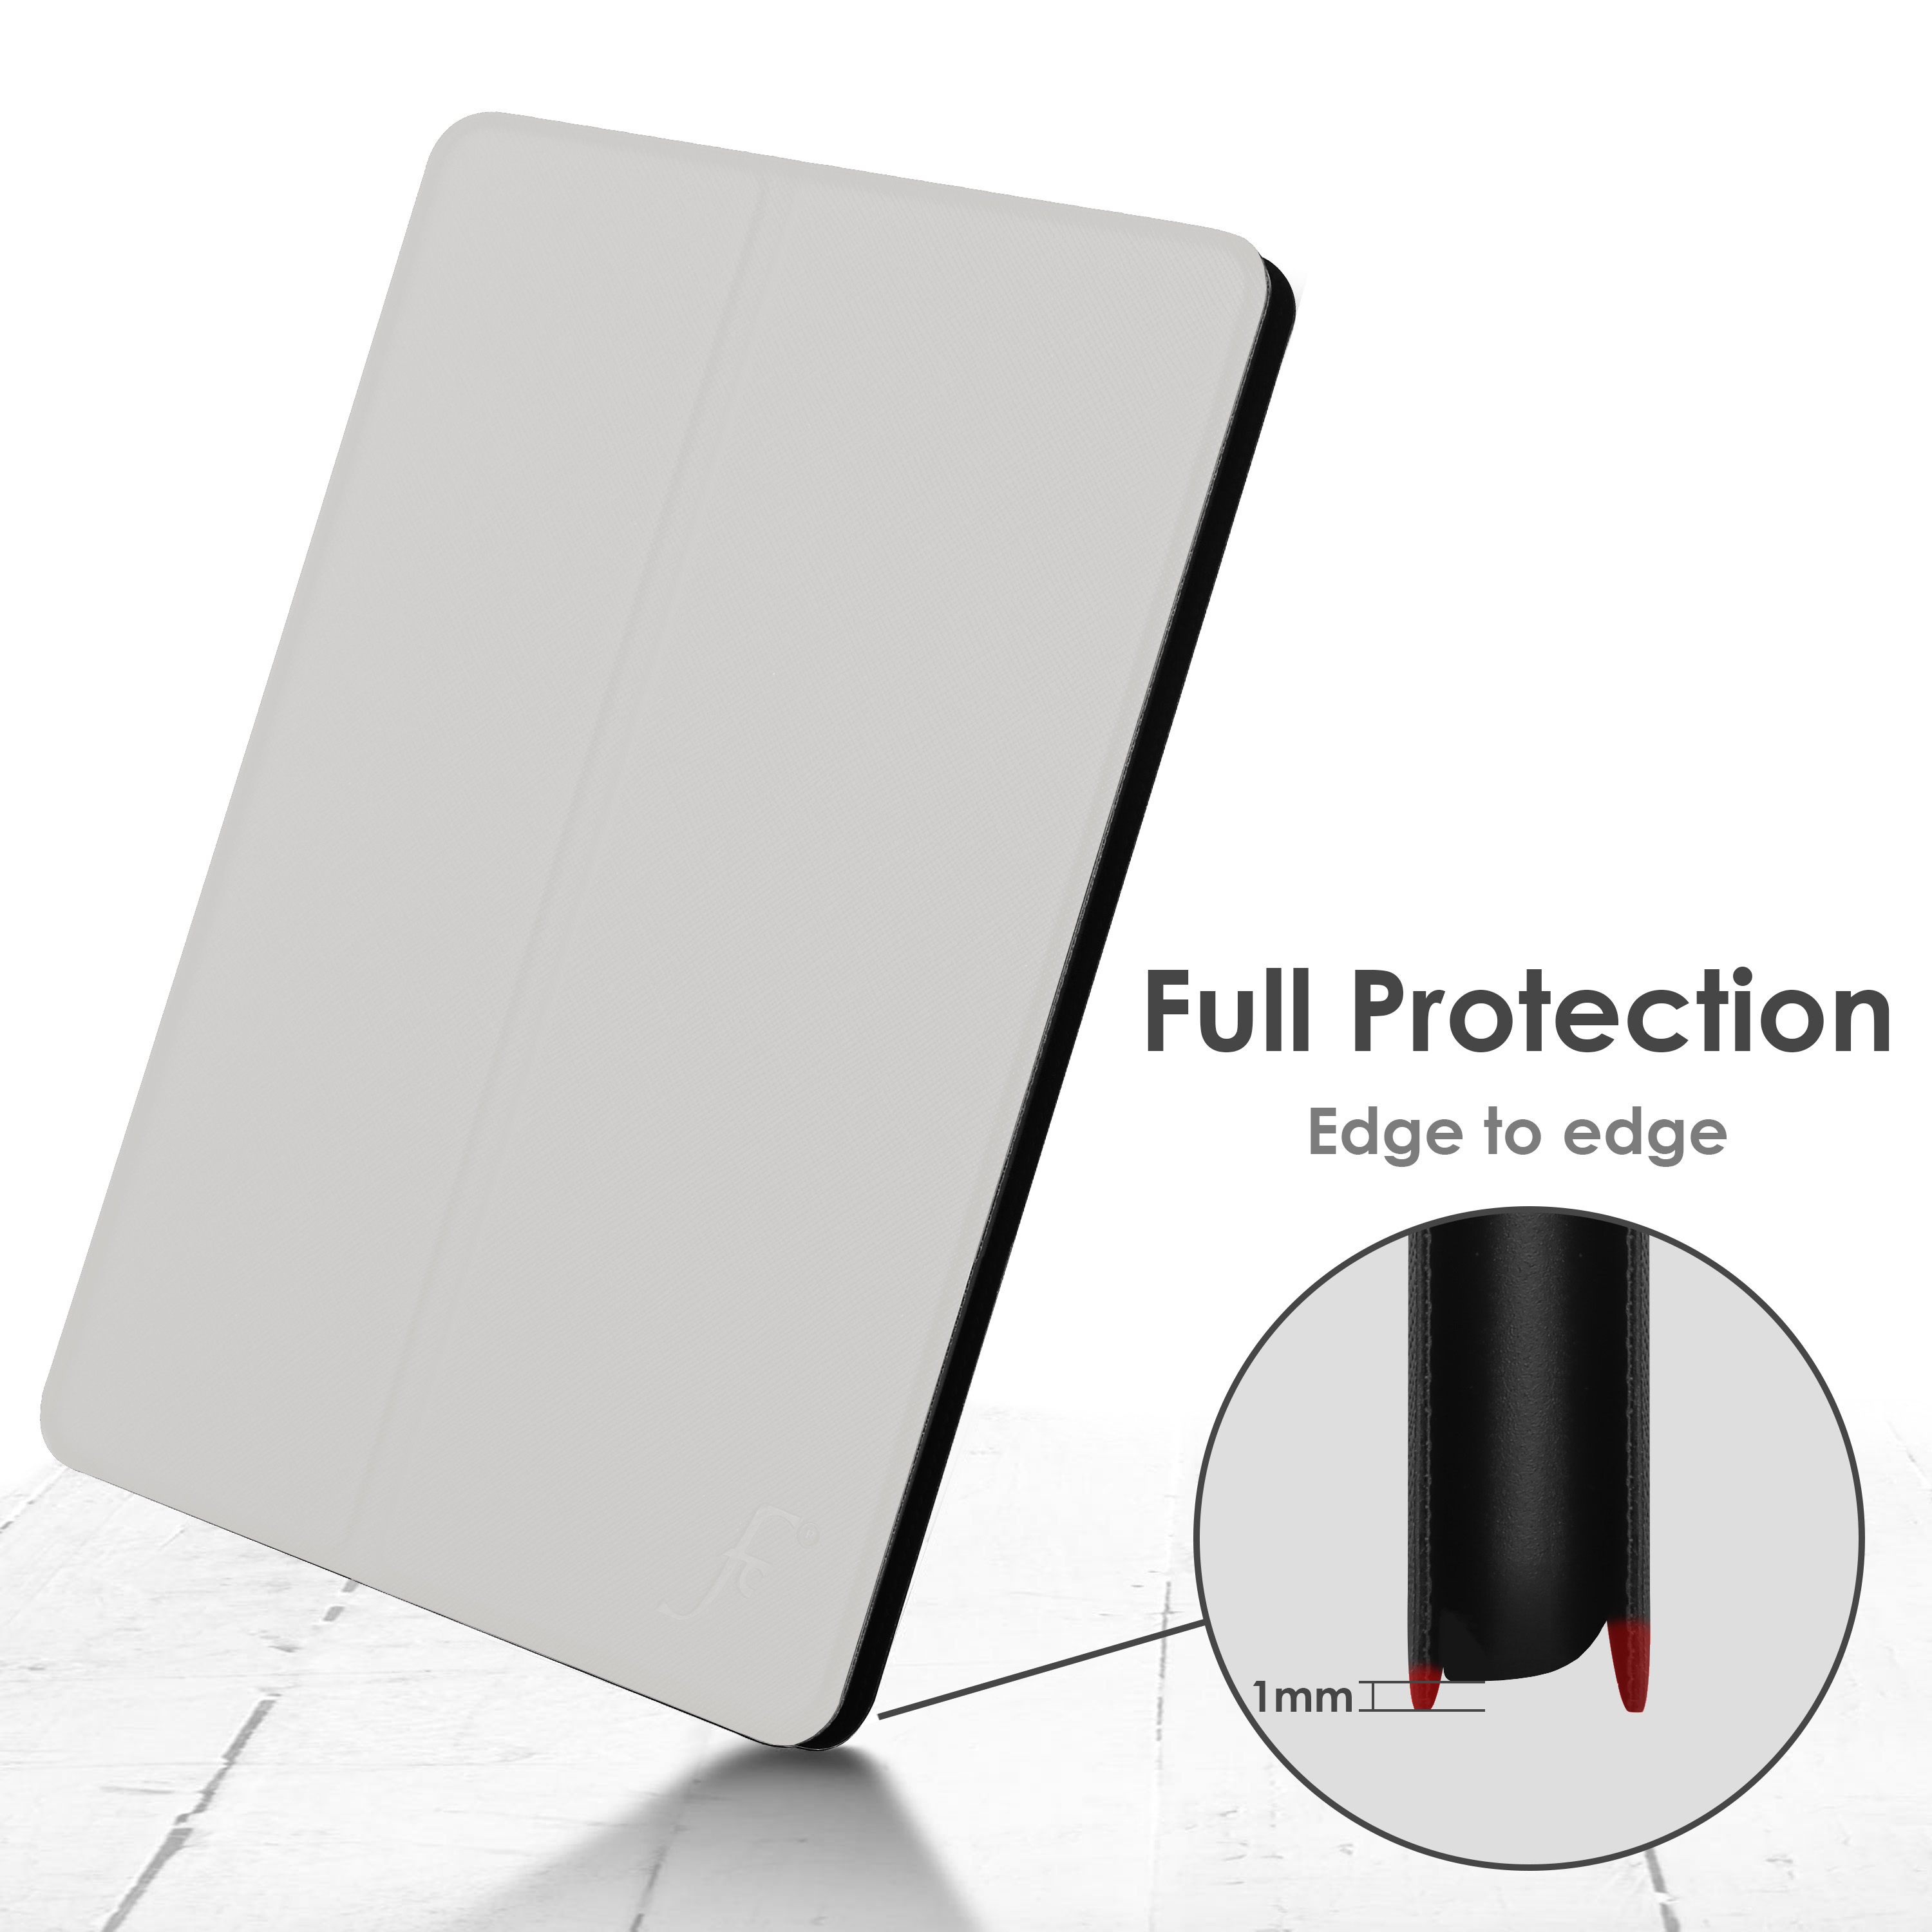 miniature 102 - Samsung Galaxy Tab A 10.1 2019 Étui Magnétique Protection & Support + Stylet